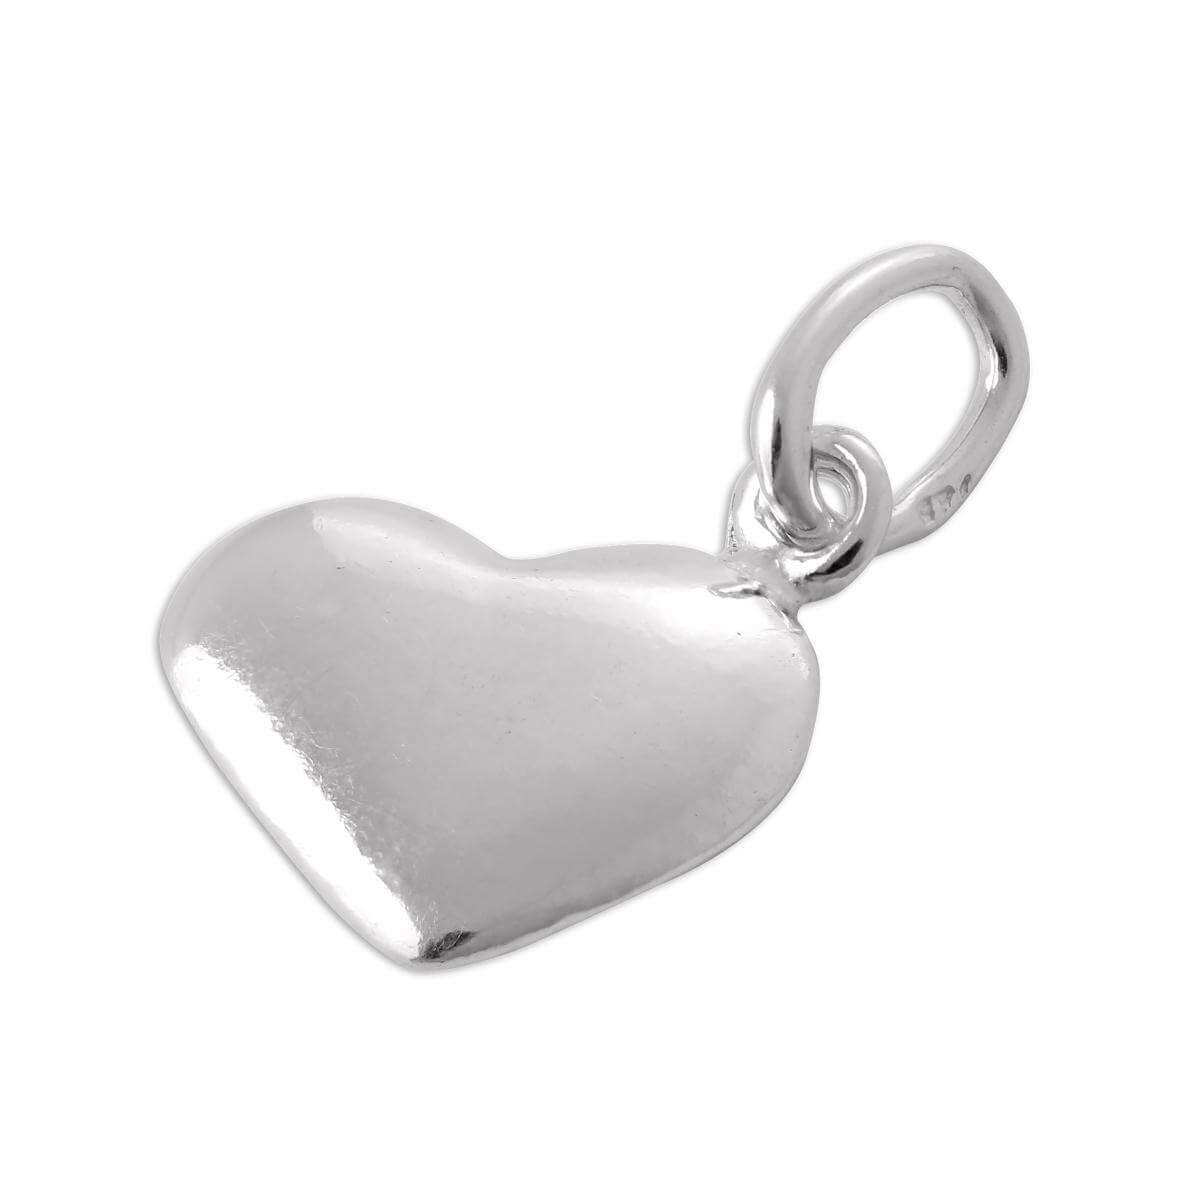 Polished Sterling Silver Puffed Heart Charm